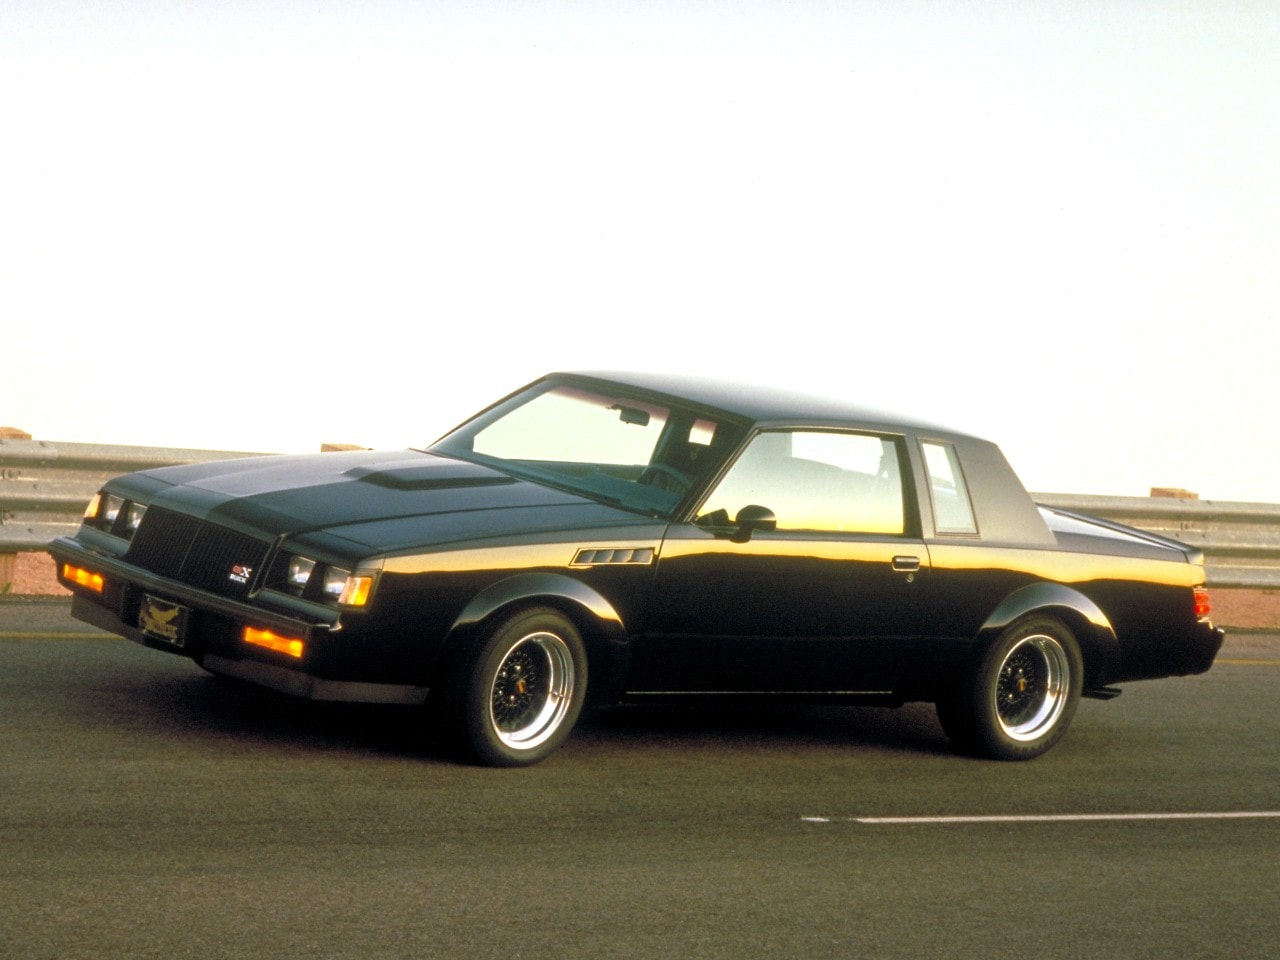 1987 Buick GNX in motion  side view